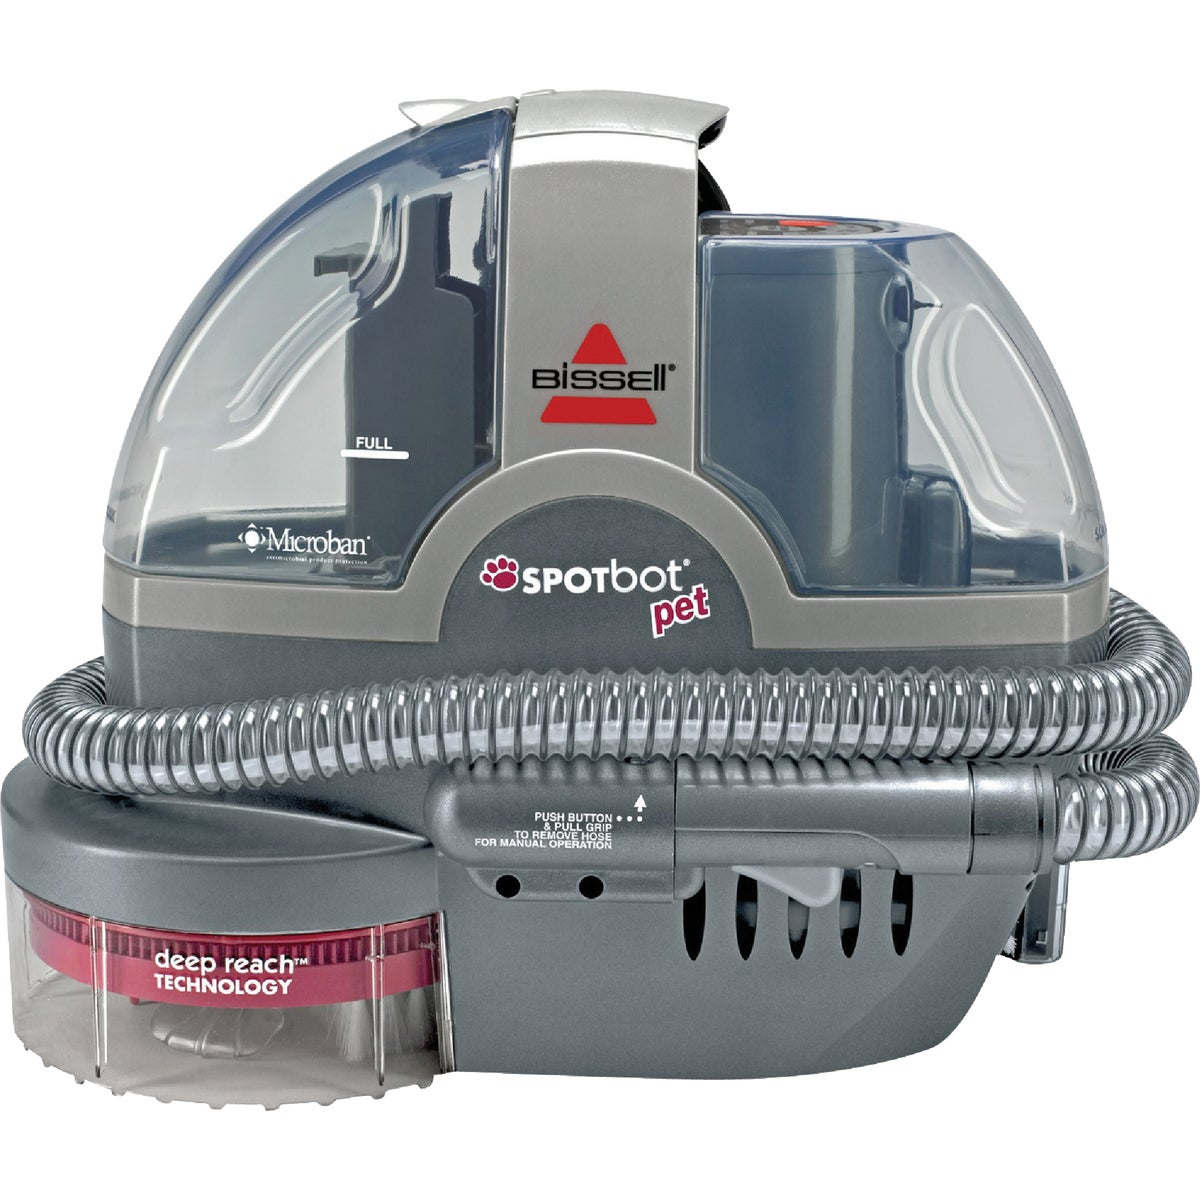 SPOTBOT PORTABLE CLEANER - 33N8 by Bissell Homecare Int